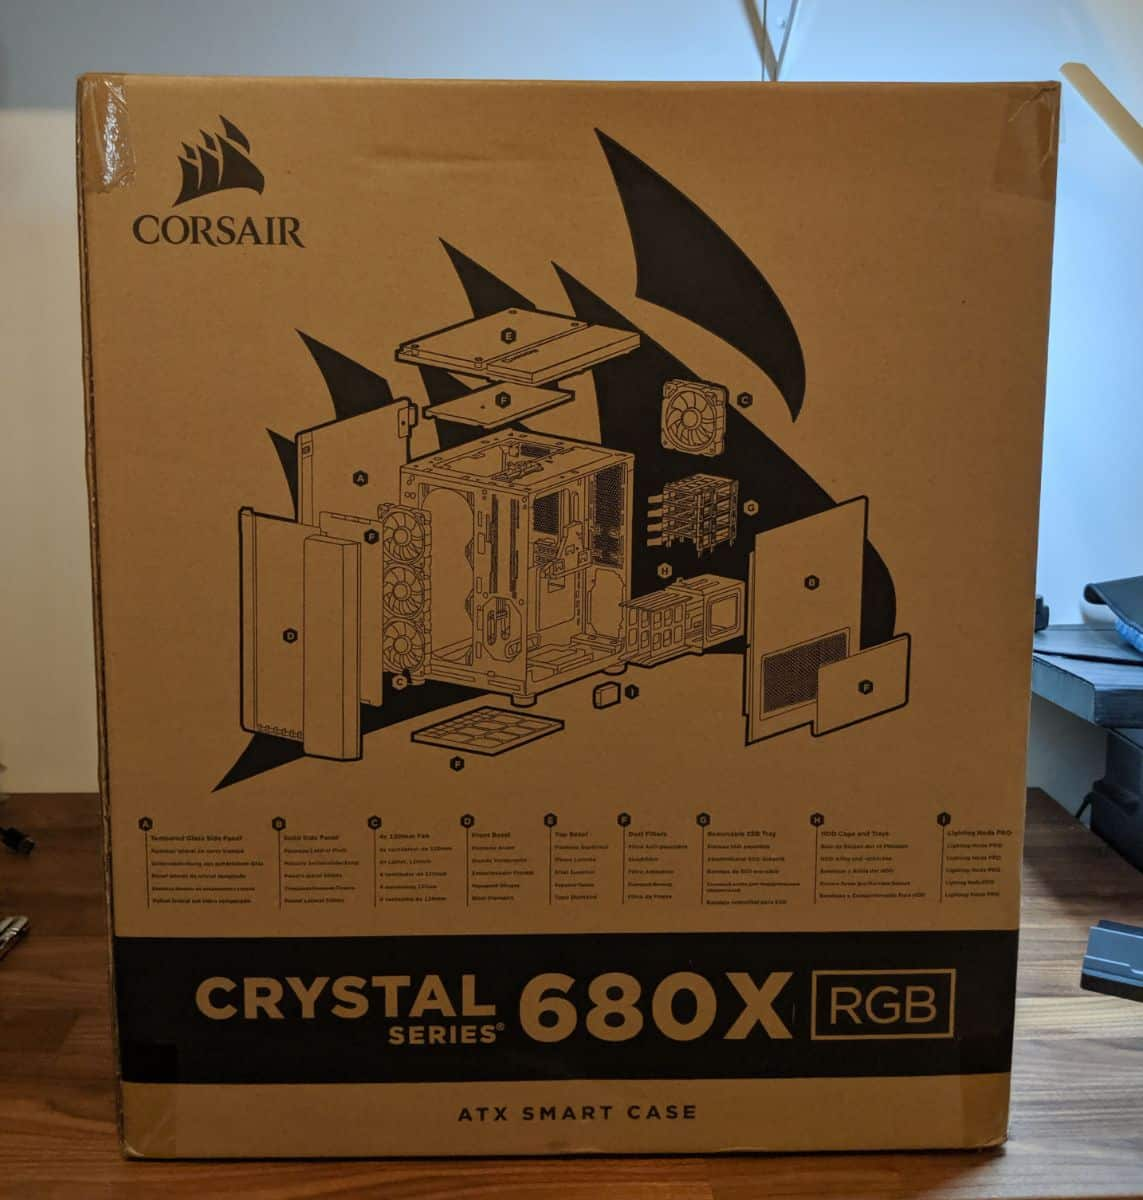 Corsair Icue Audio Visualizer